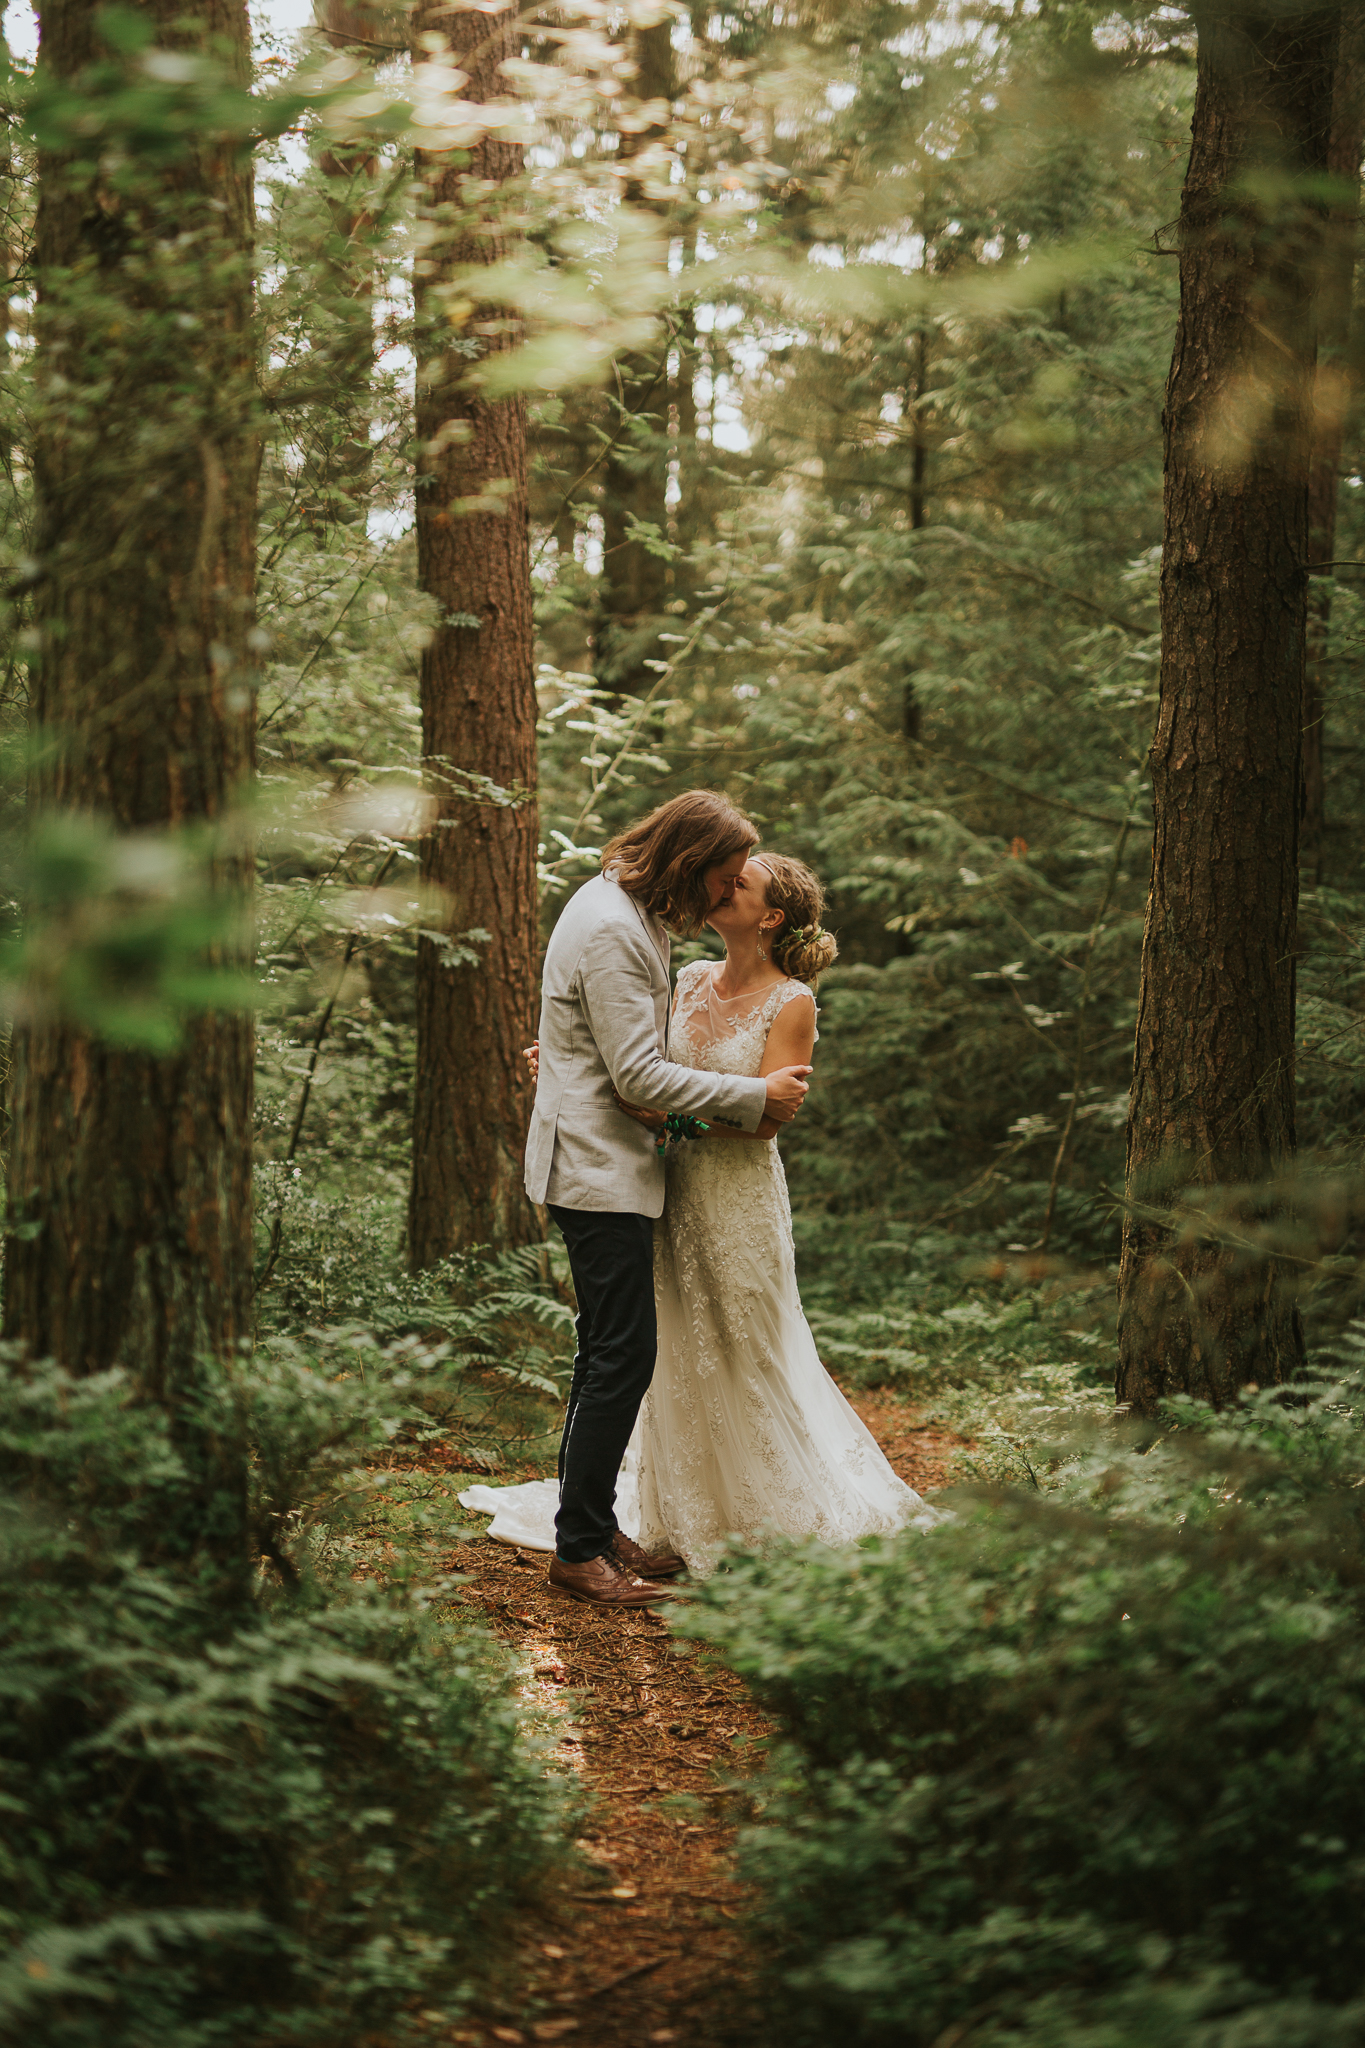 A Little Picture Wedding Photography woods boho creative